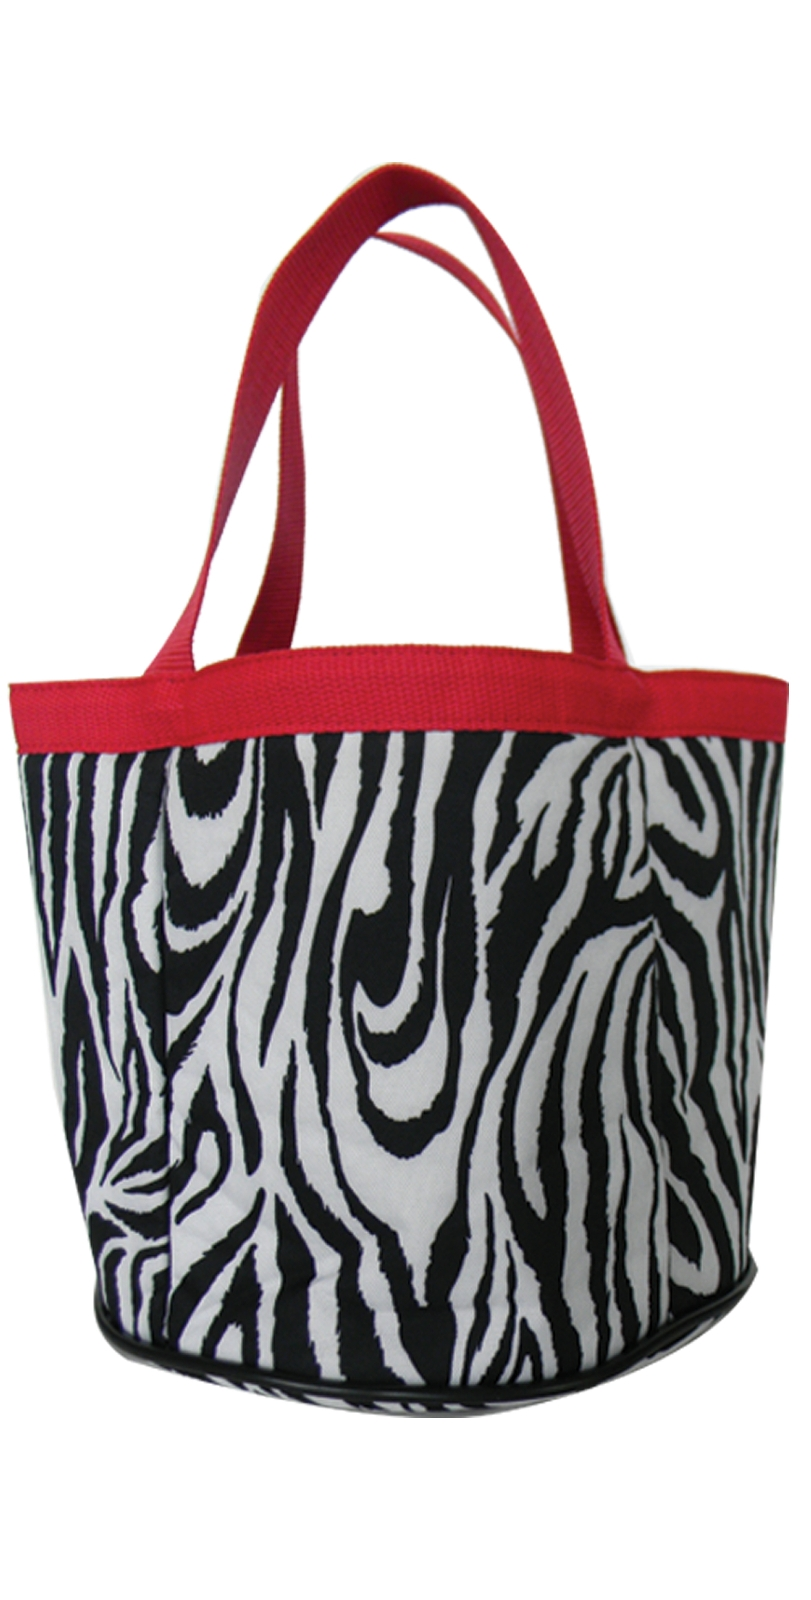 Lami-Cell Zebra Small Tote